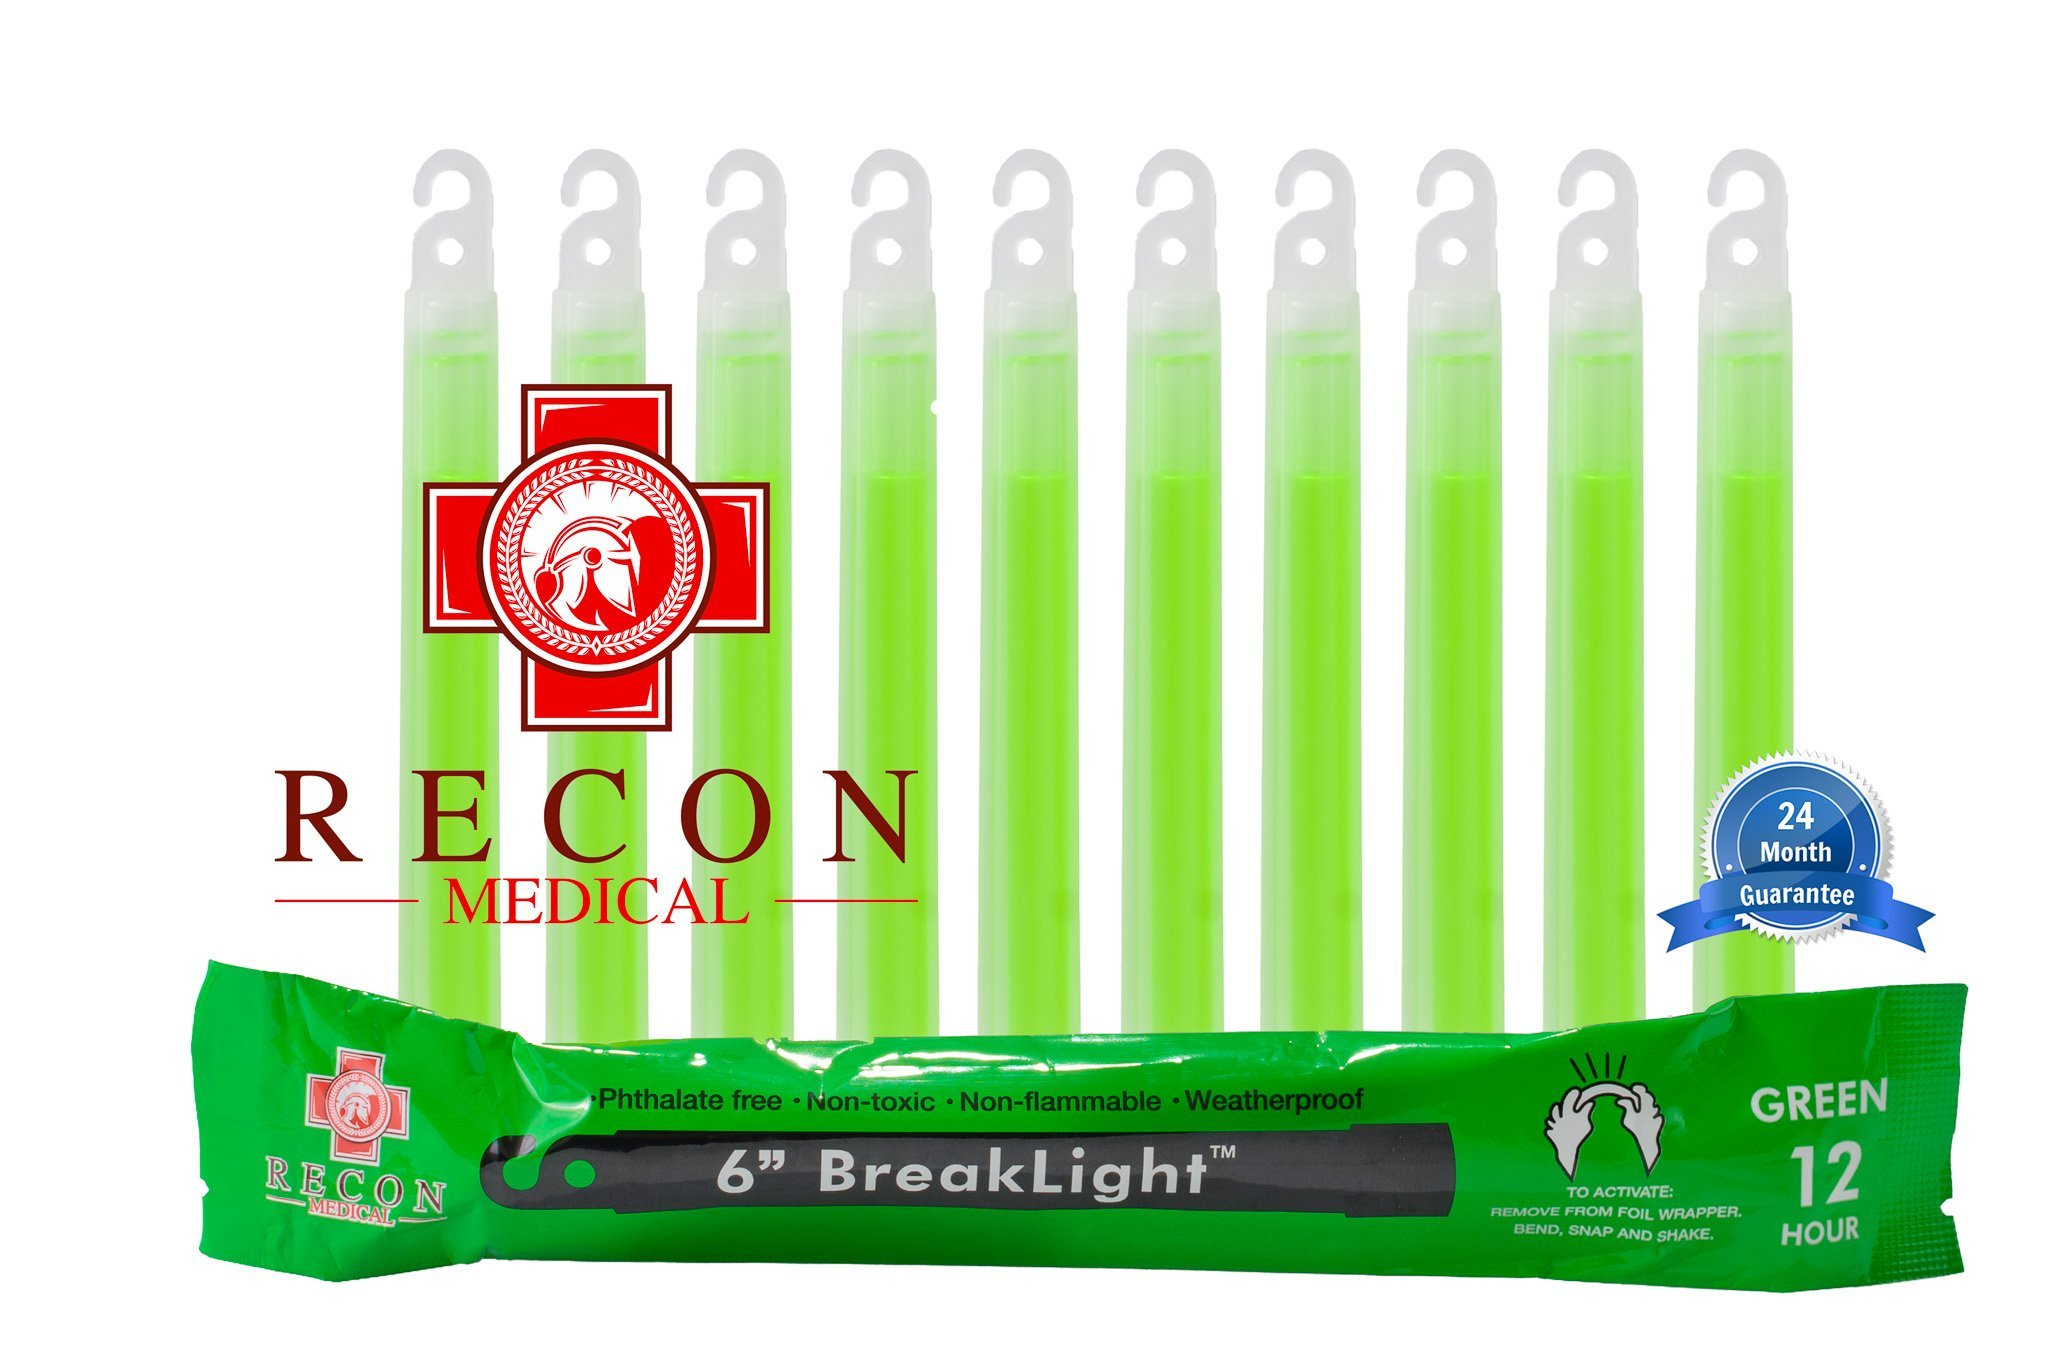 10 Pack (GREEN) Tactical BreakLights- Recon Medical, 6 Inch, Ultra Bright, First Aid Kit, Hexagon Shape, Ultra Bright Glow Sticks Emergency Light Sticks, Over 12 hour burn time